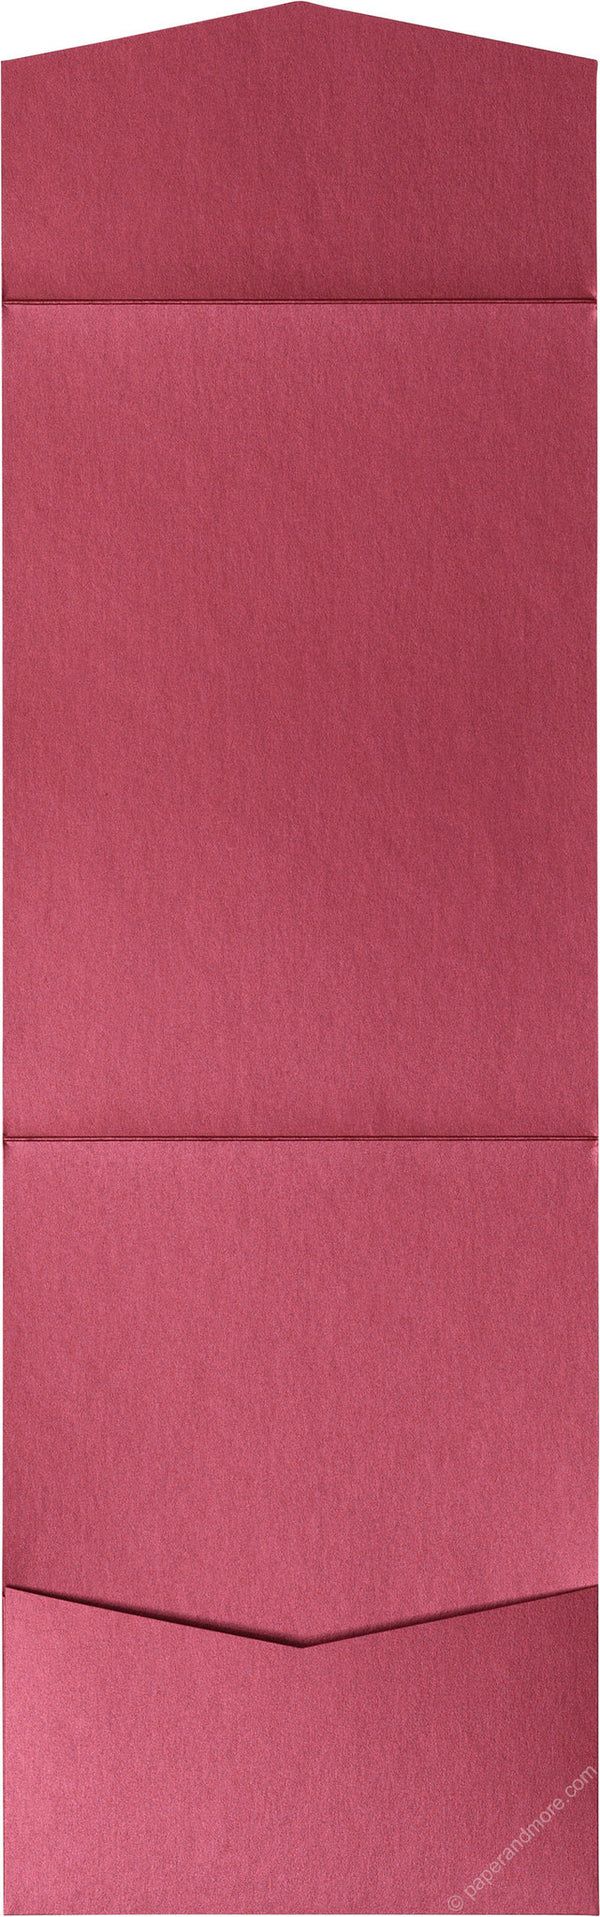 Crimson Red Metallic Pocket Invitation Card, A7 Cascade - Paperandmore.com